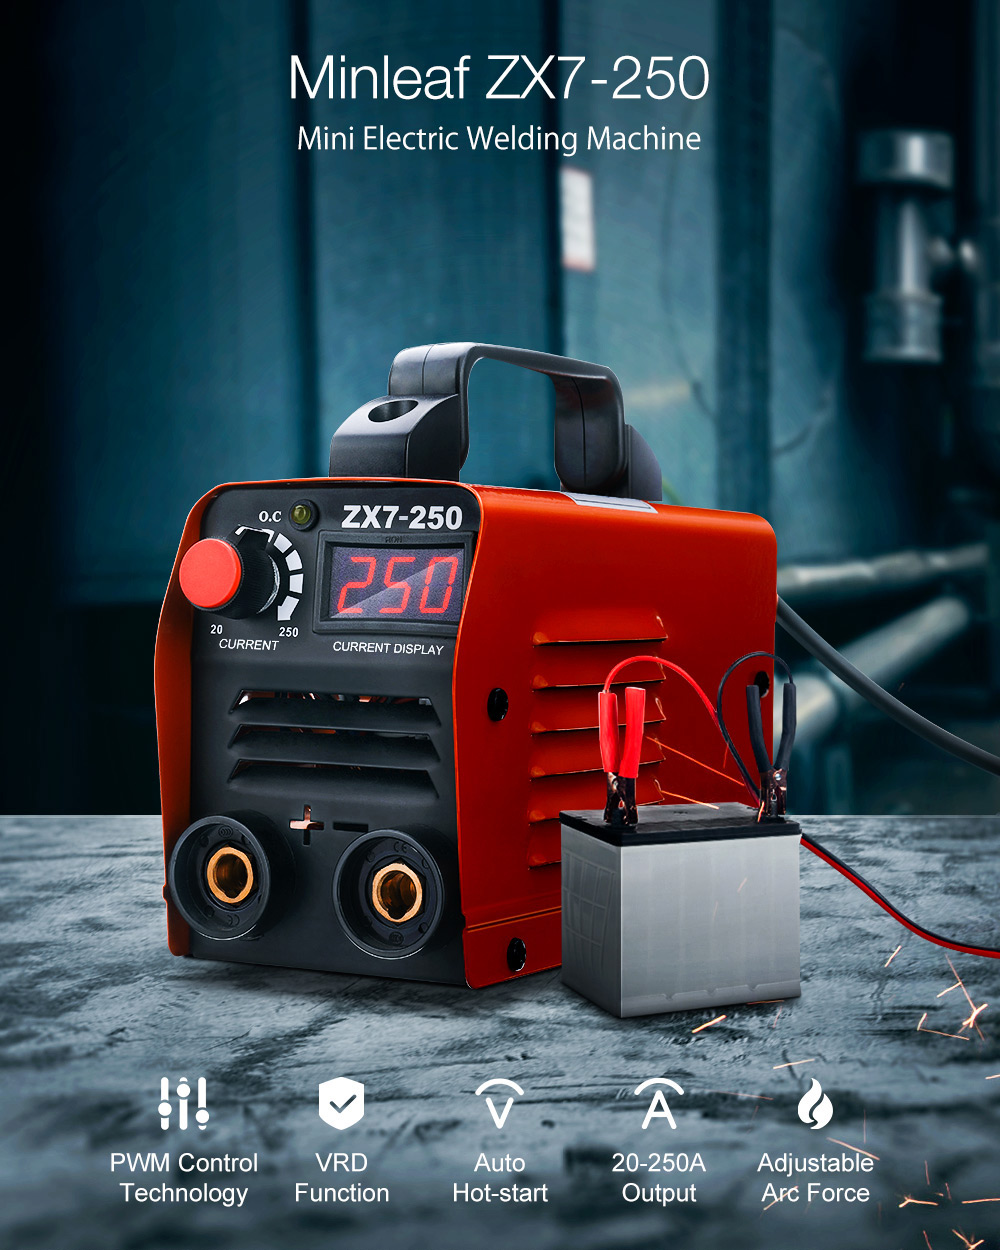 ZX7-250 250A Mini Electric Welding Machine Portable Digital Display MMA ARC DC Inverter Plastic-welder Weld Equipment